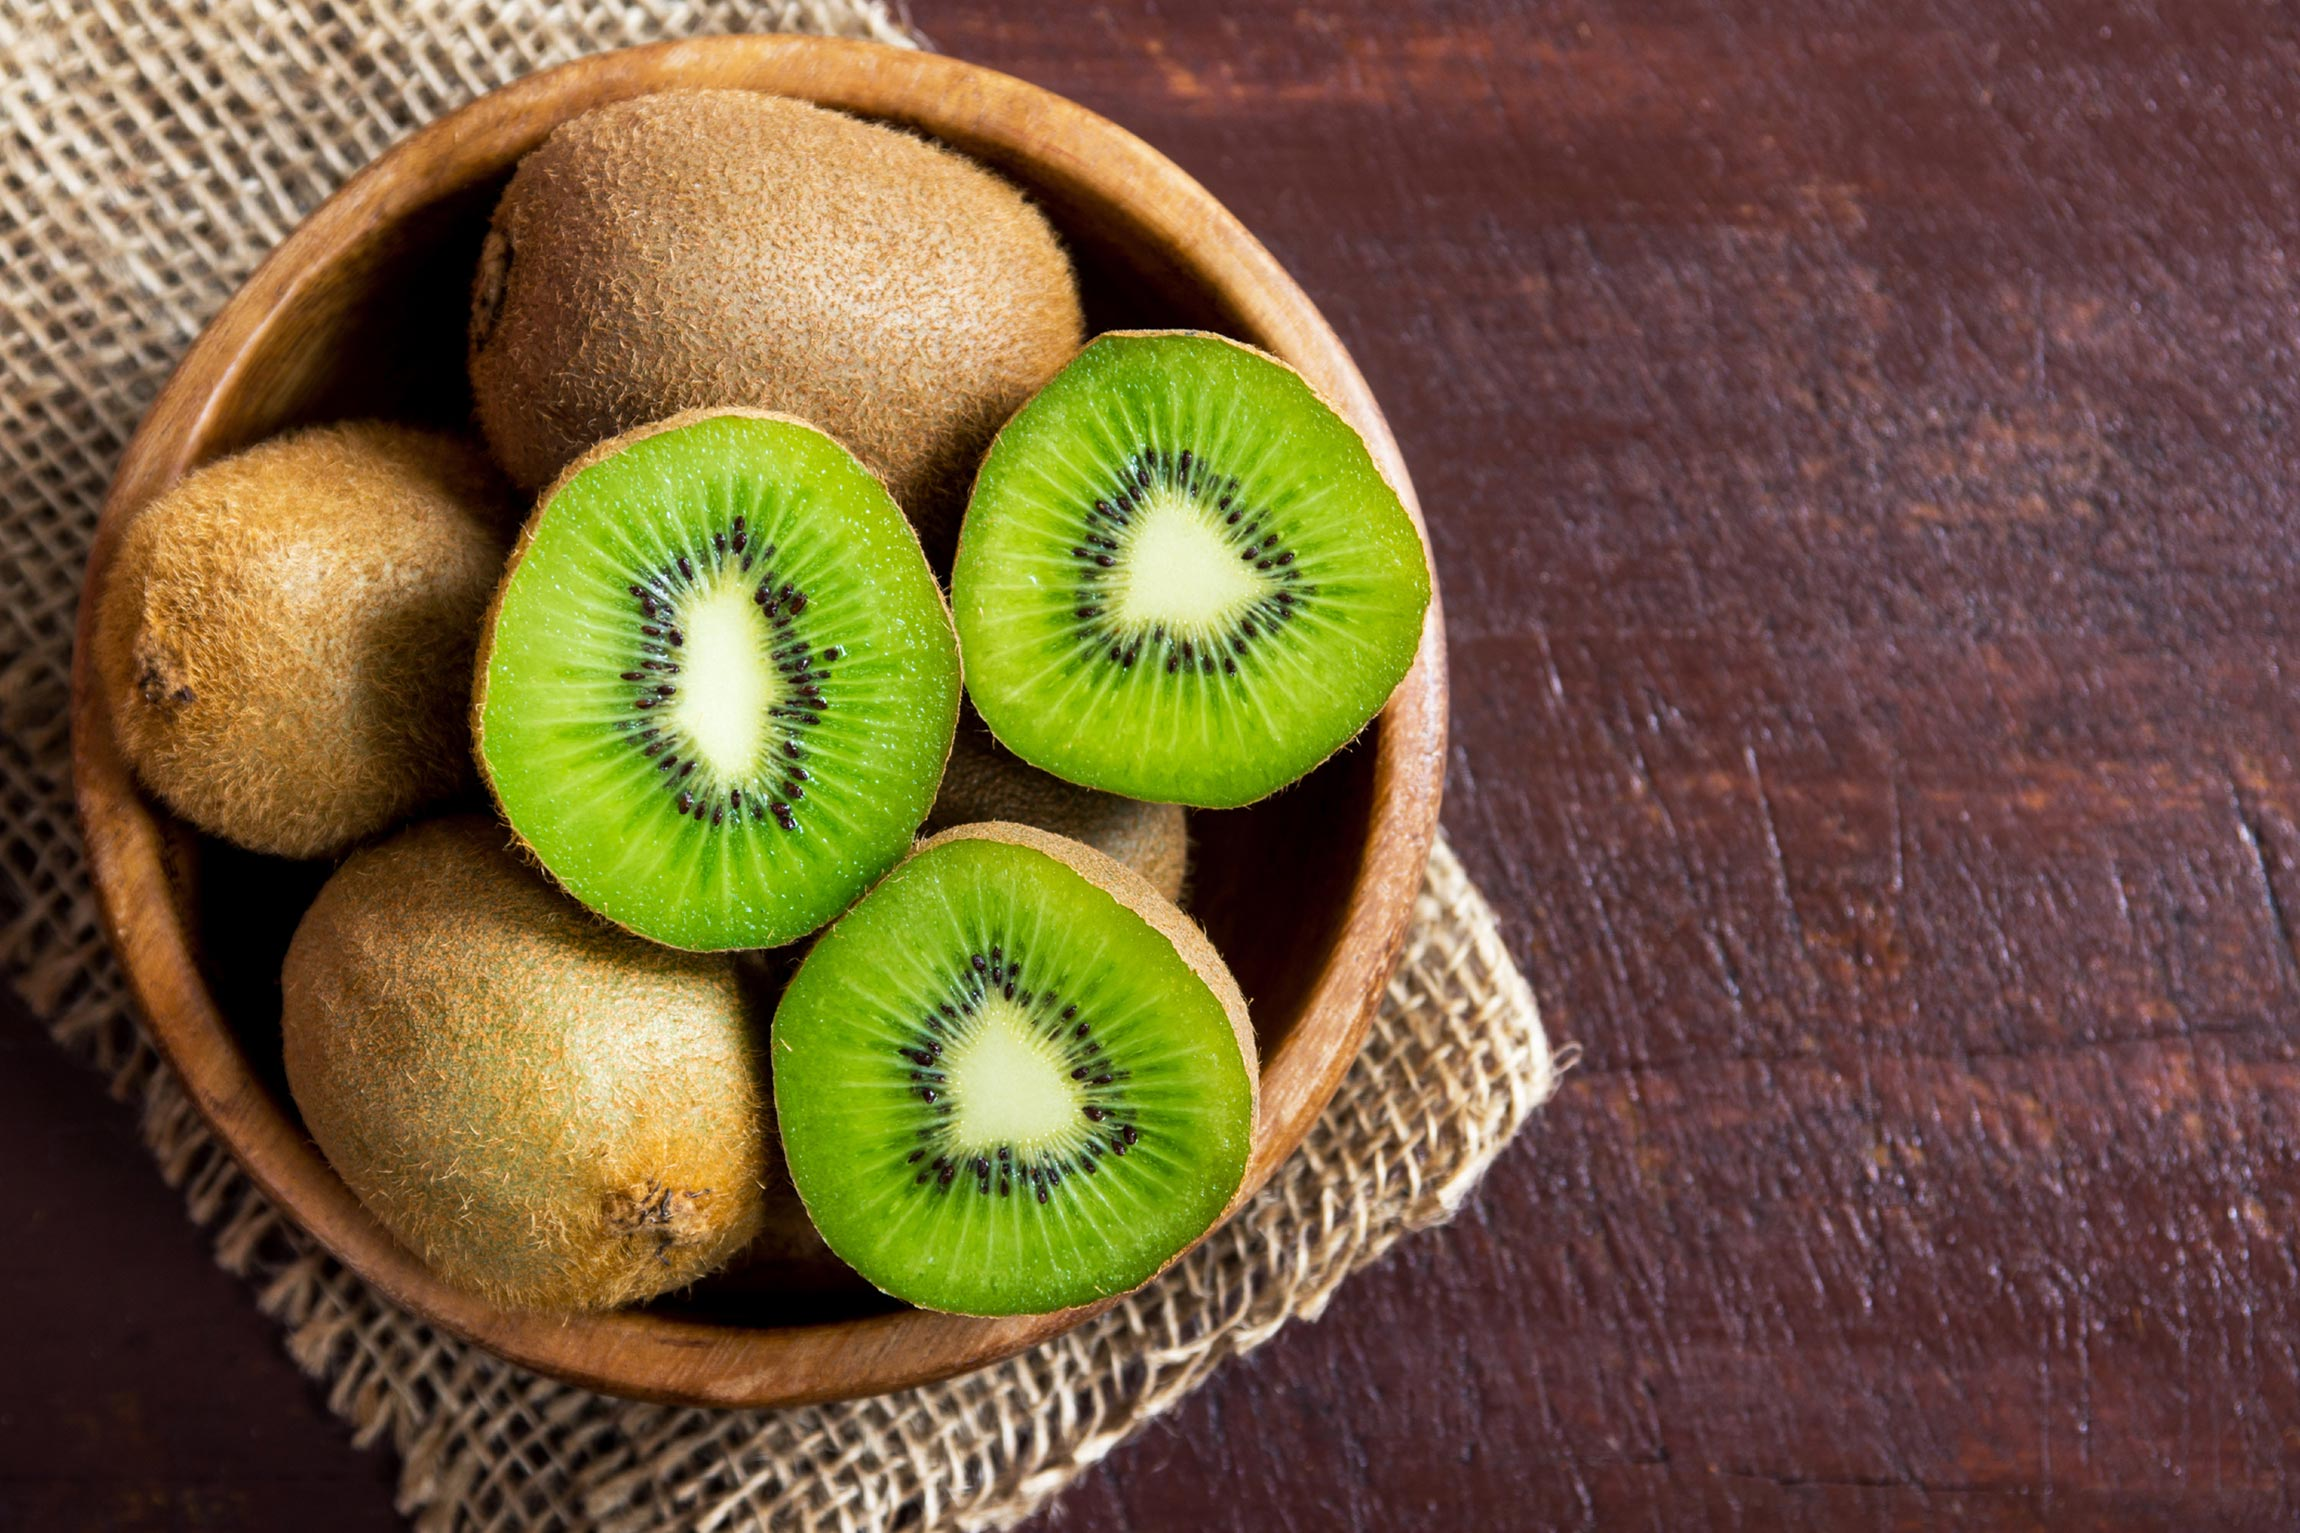 Diet for immunity: kiwis